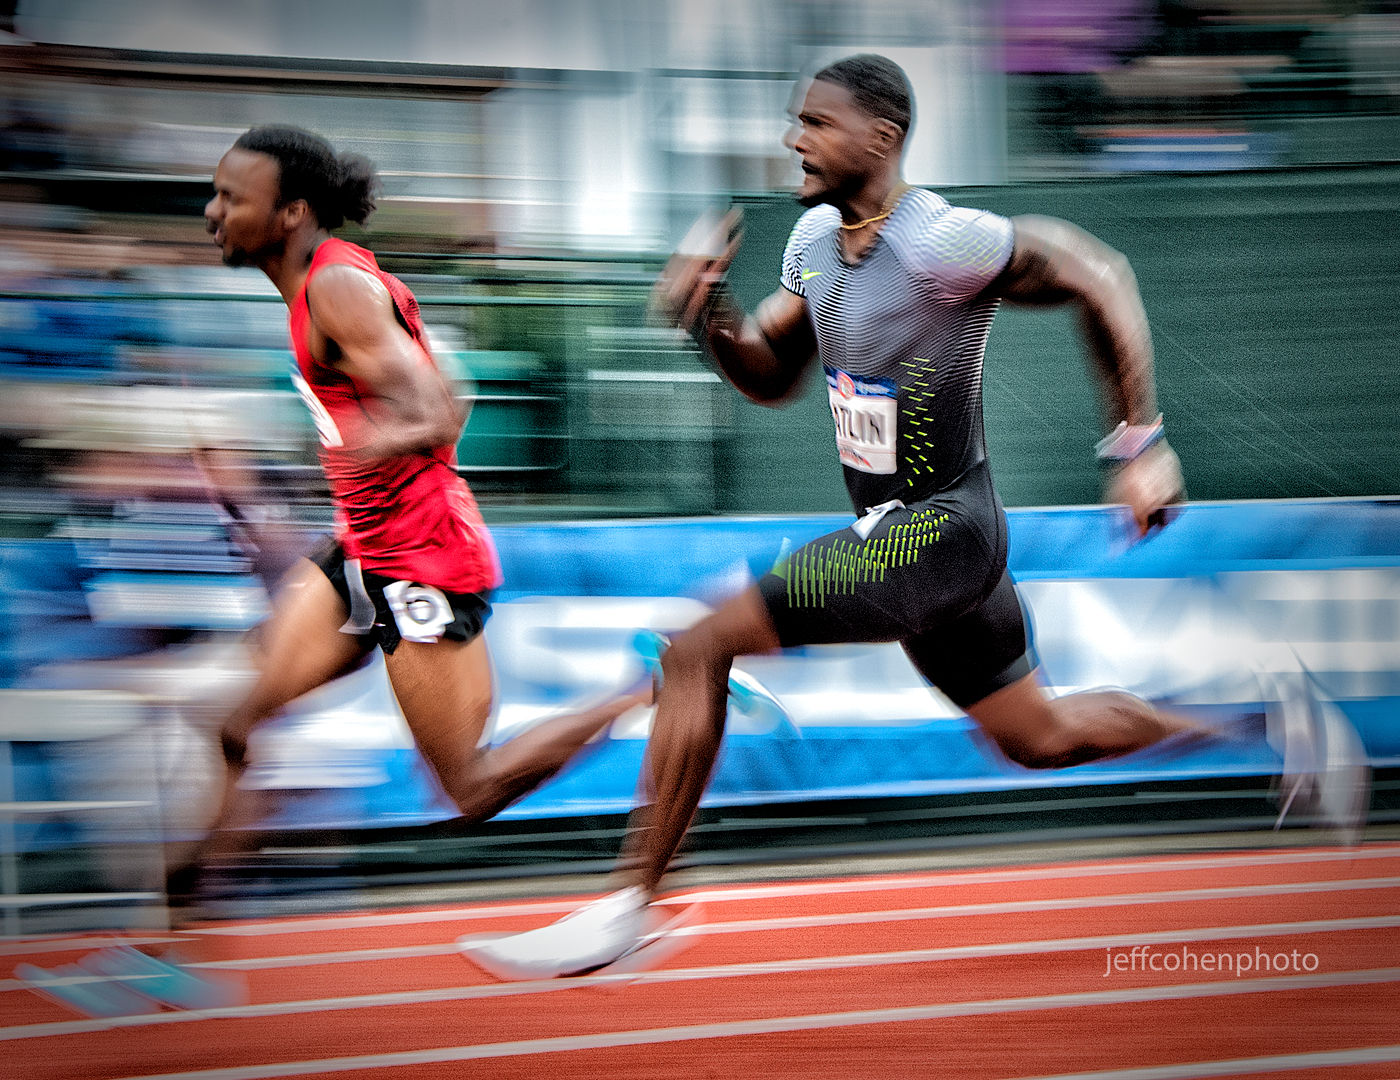 1r2016_oly_trials_day_6_gatlin_200_blur_jeff_cohen_photo_20763_web.jpg